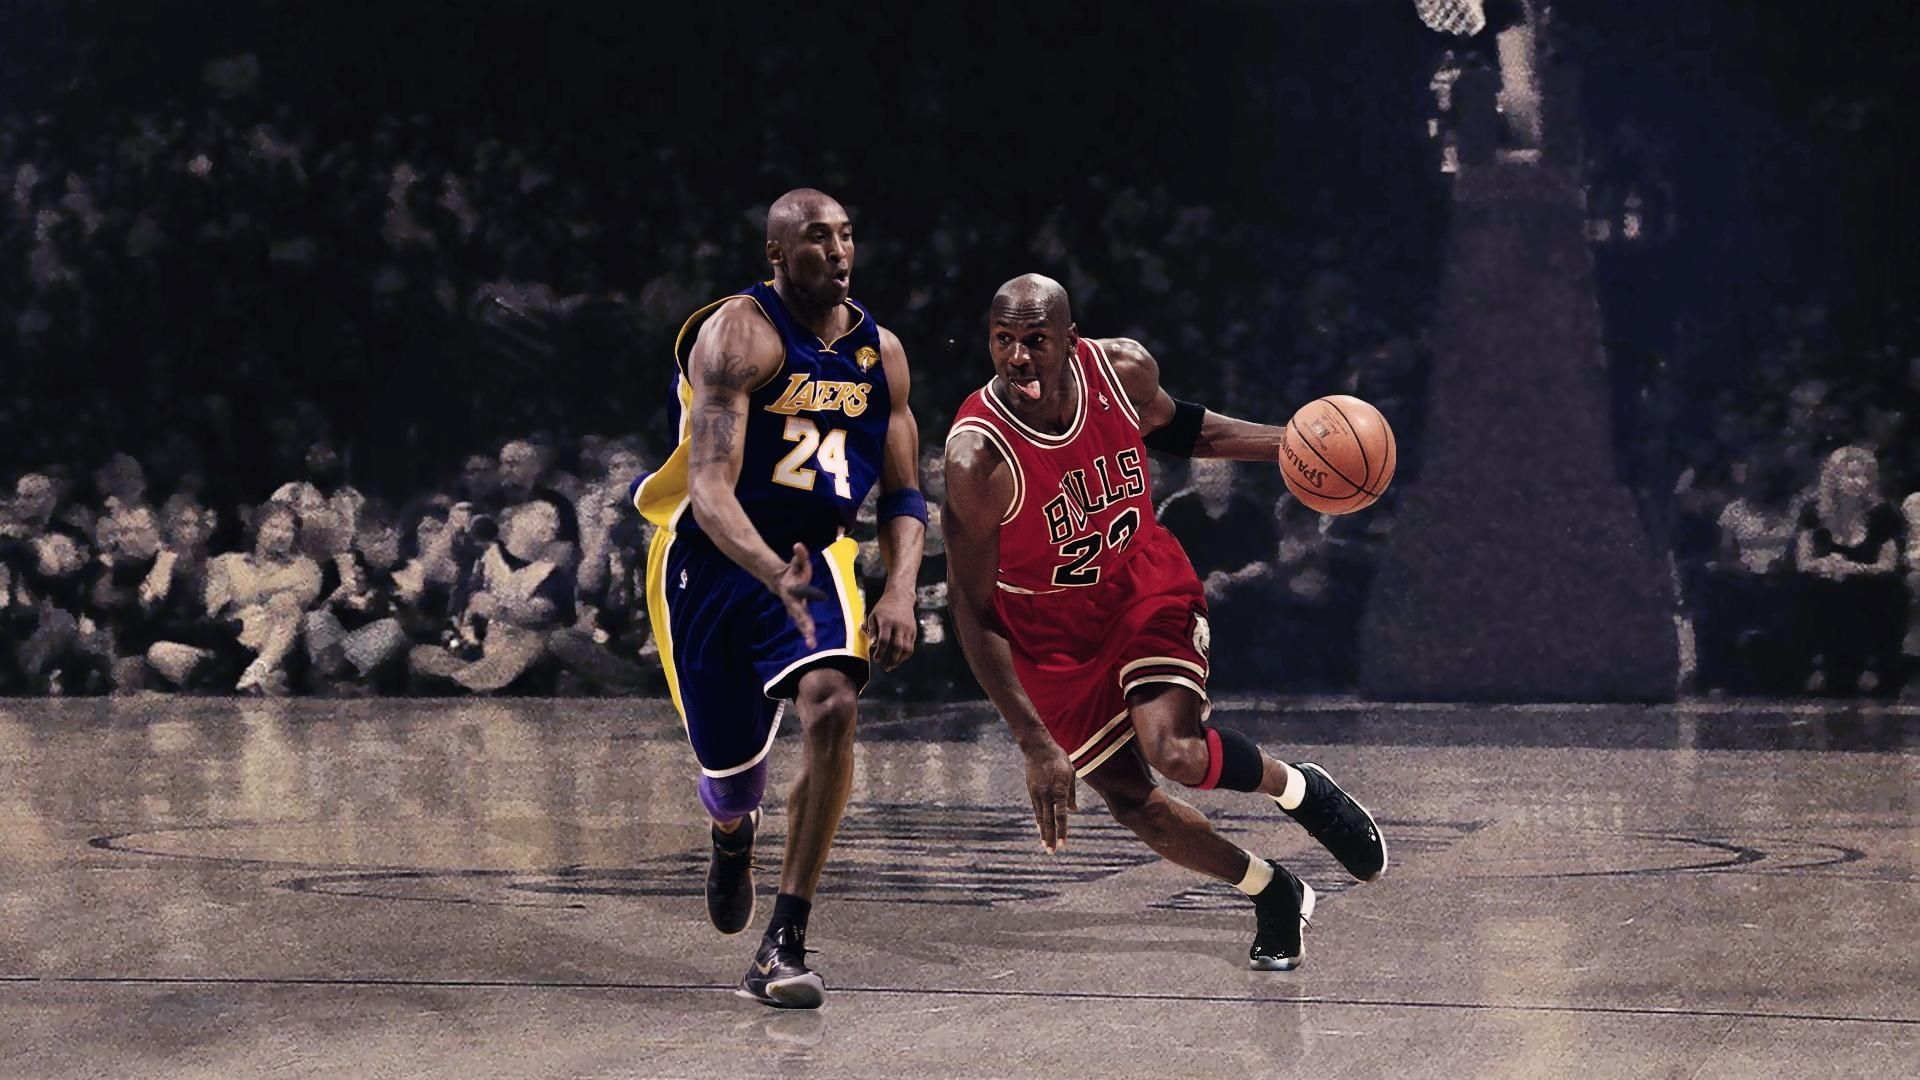 michael jordan pc backgrounds hd free Basquetball, Air